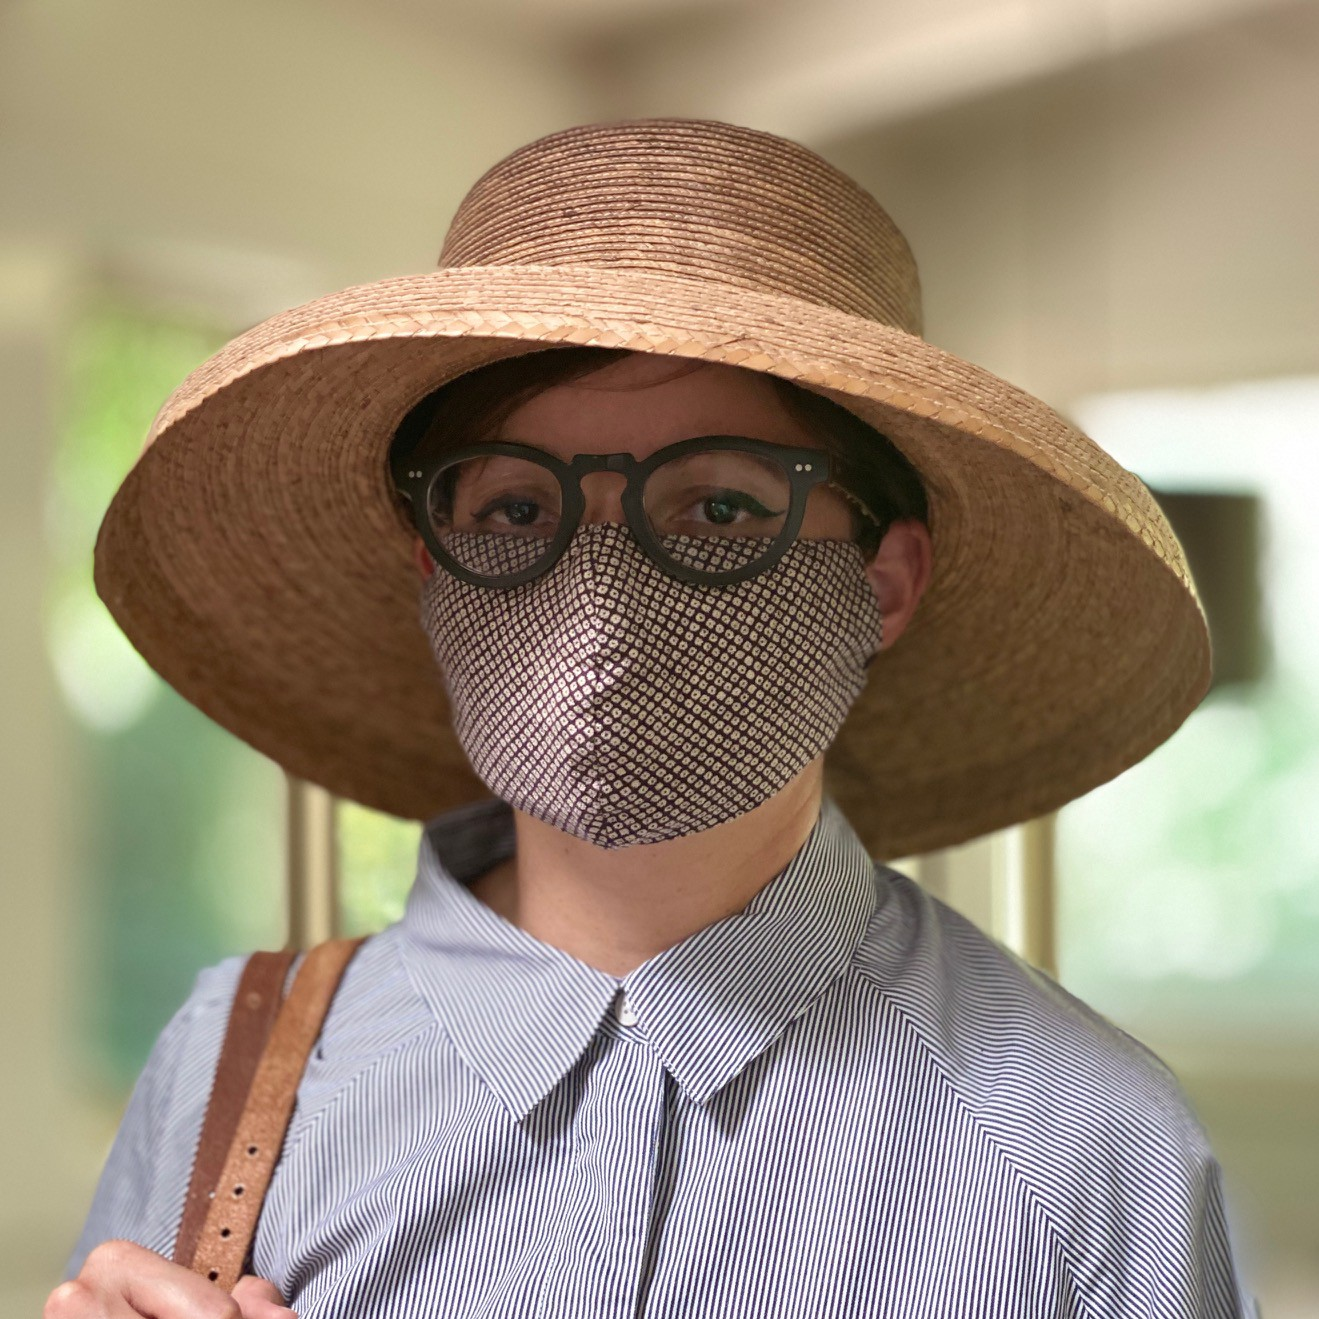 A person wearing a button-up shirt, round glasses, a wide-brimmed straw hat, and a face mask with a diamond pattern.